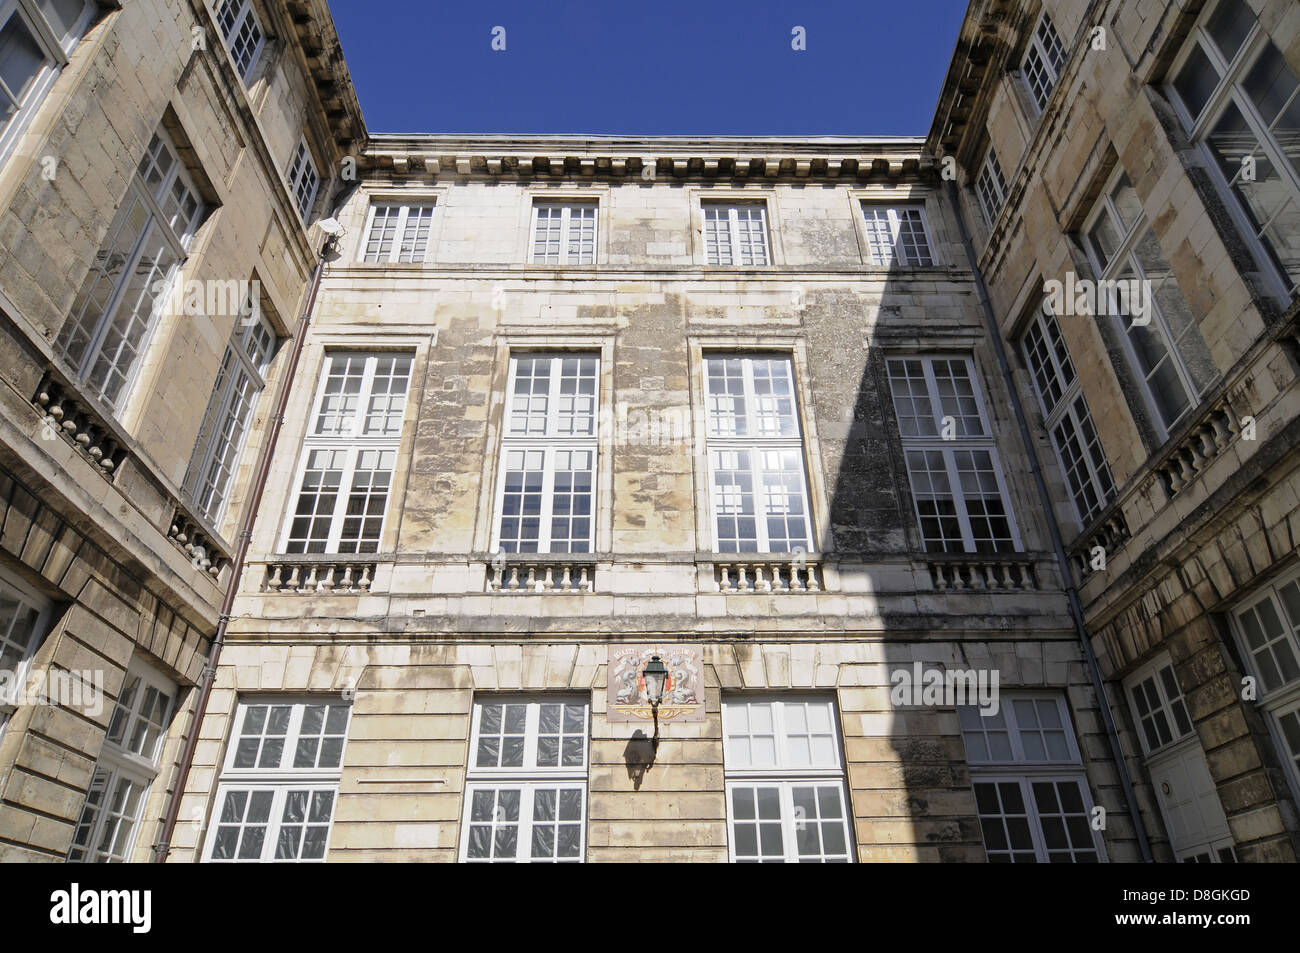 Musee des Beaux Arts Stock Photo